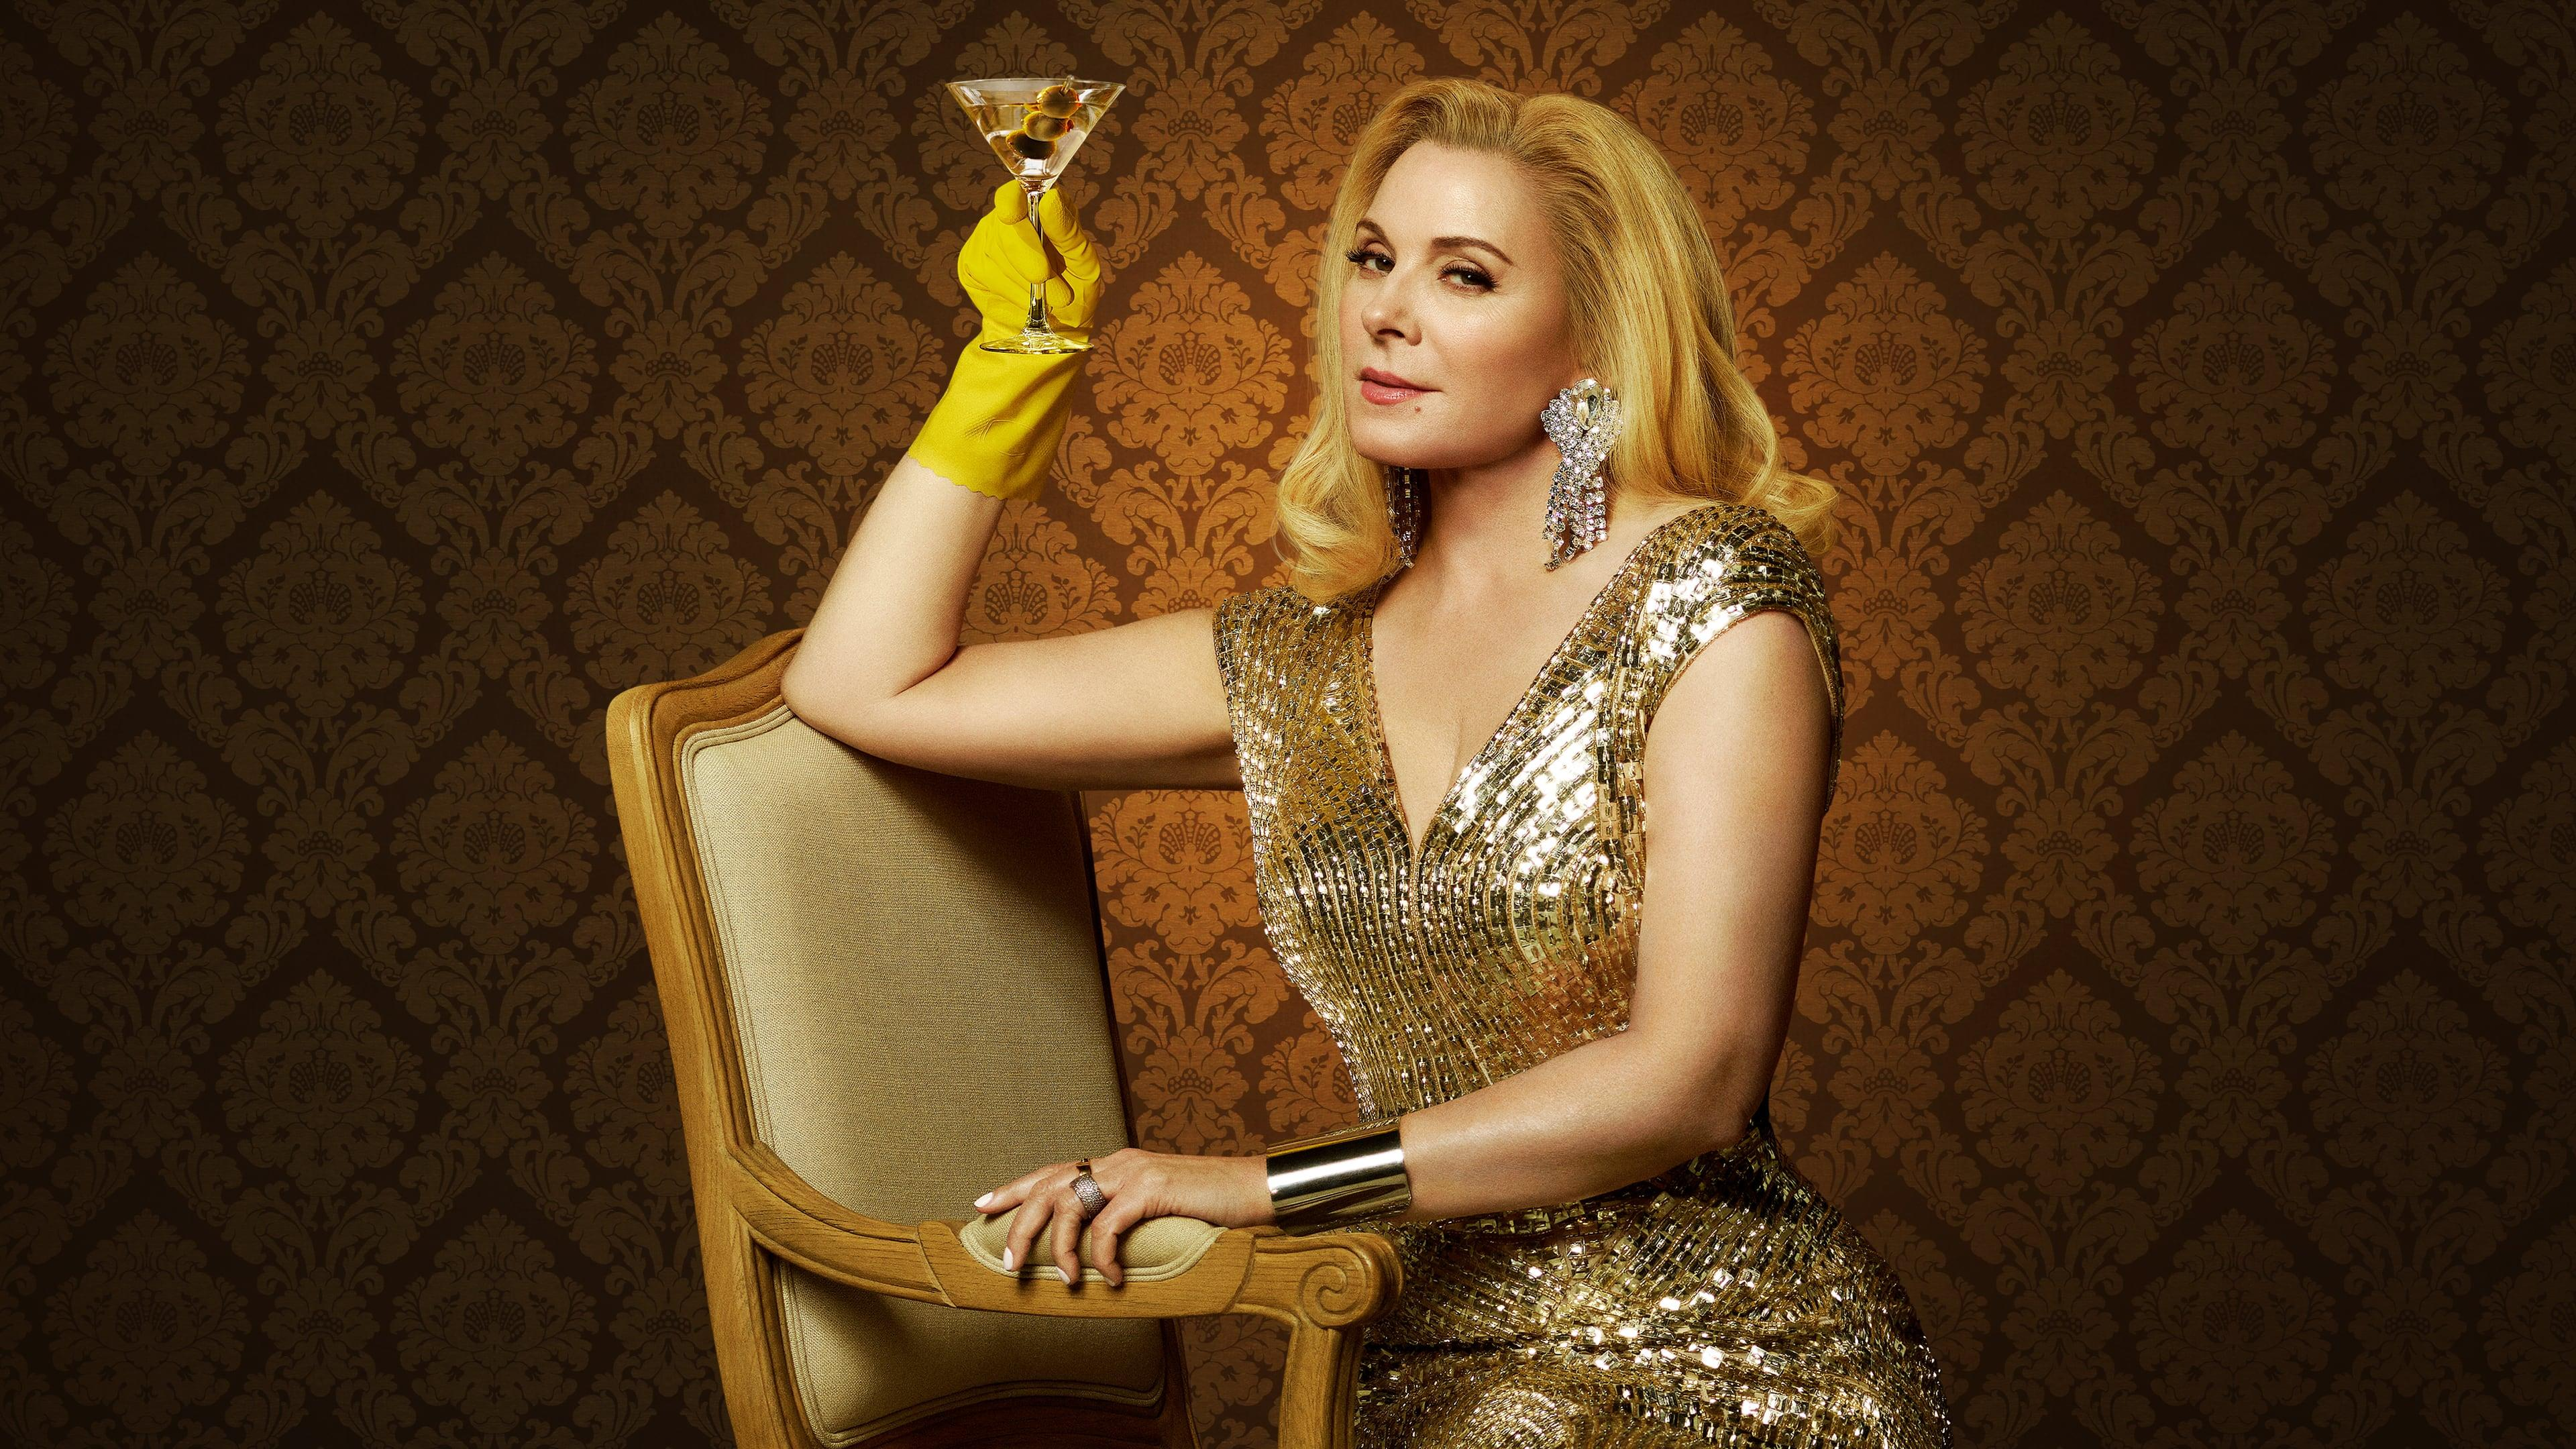 The It List: Kim Cattrall returns to TV in 'Filthy Rich,' Carrie Underwood drops first Christmas album, Harry and Meghan appear on 'Time 100' and the best in pop culture the week of Sept. 21, 2020